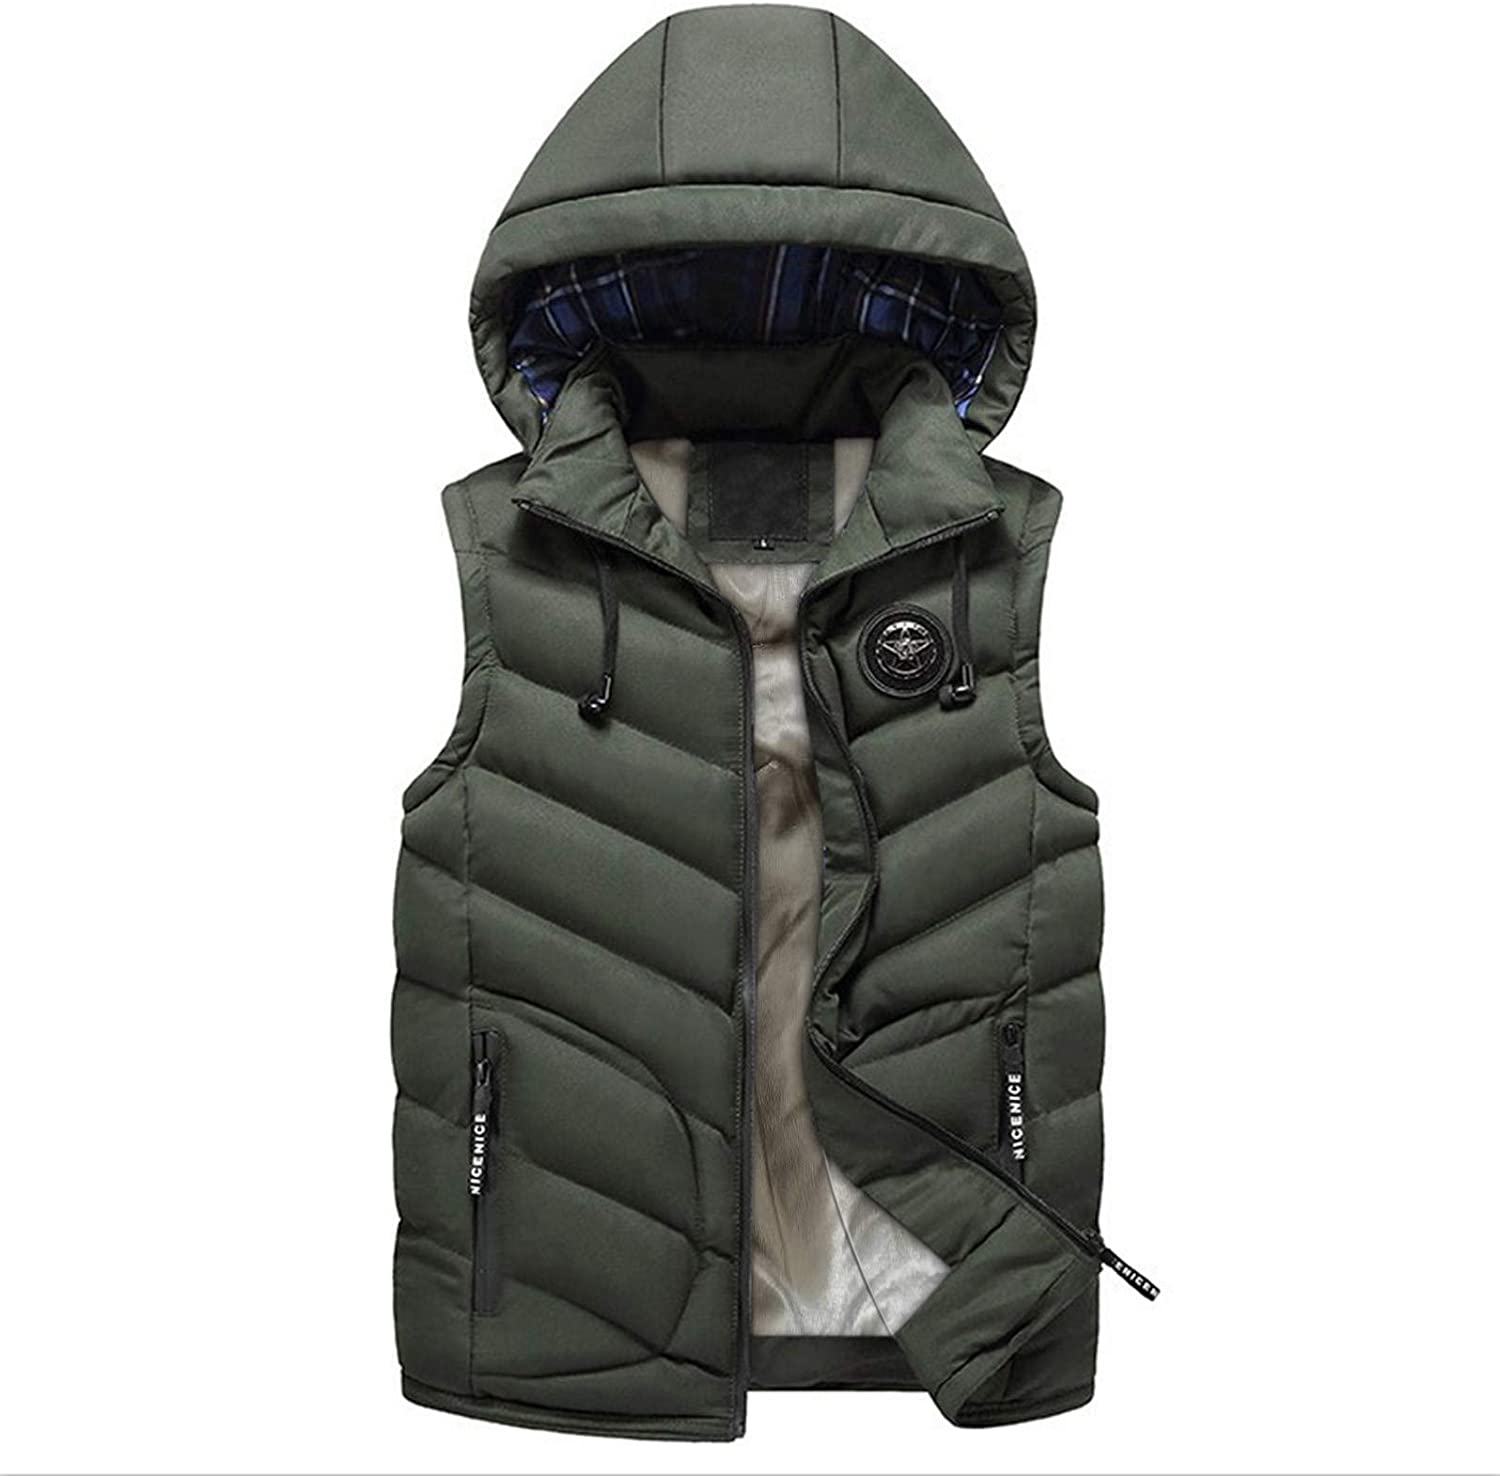 Little Story Man Tops Casual,Fashion Men Autum Winter Hooded Solid Outwear Vest Jacket Tops Blouse Men's Blouse for Easter